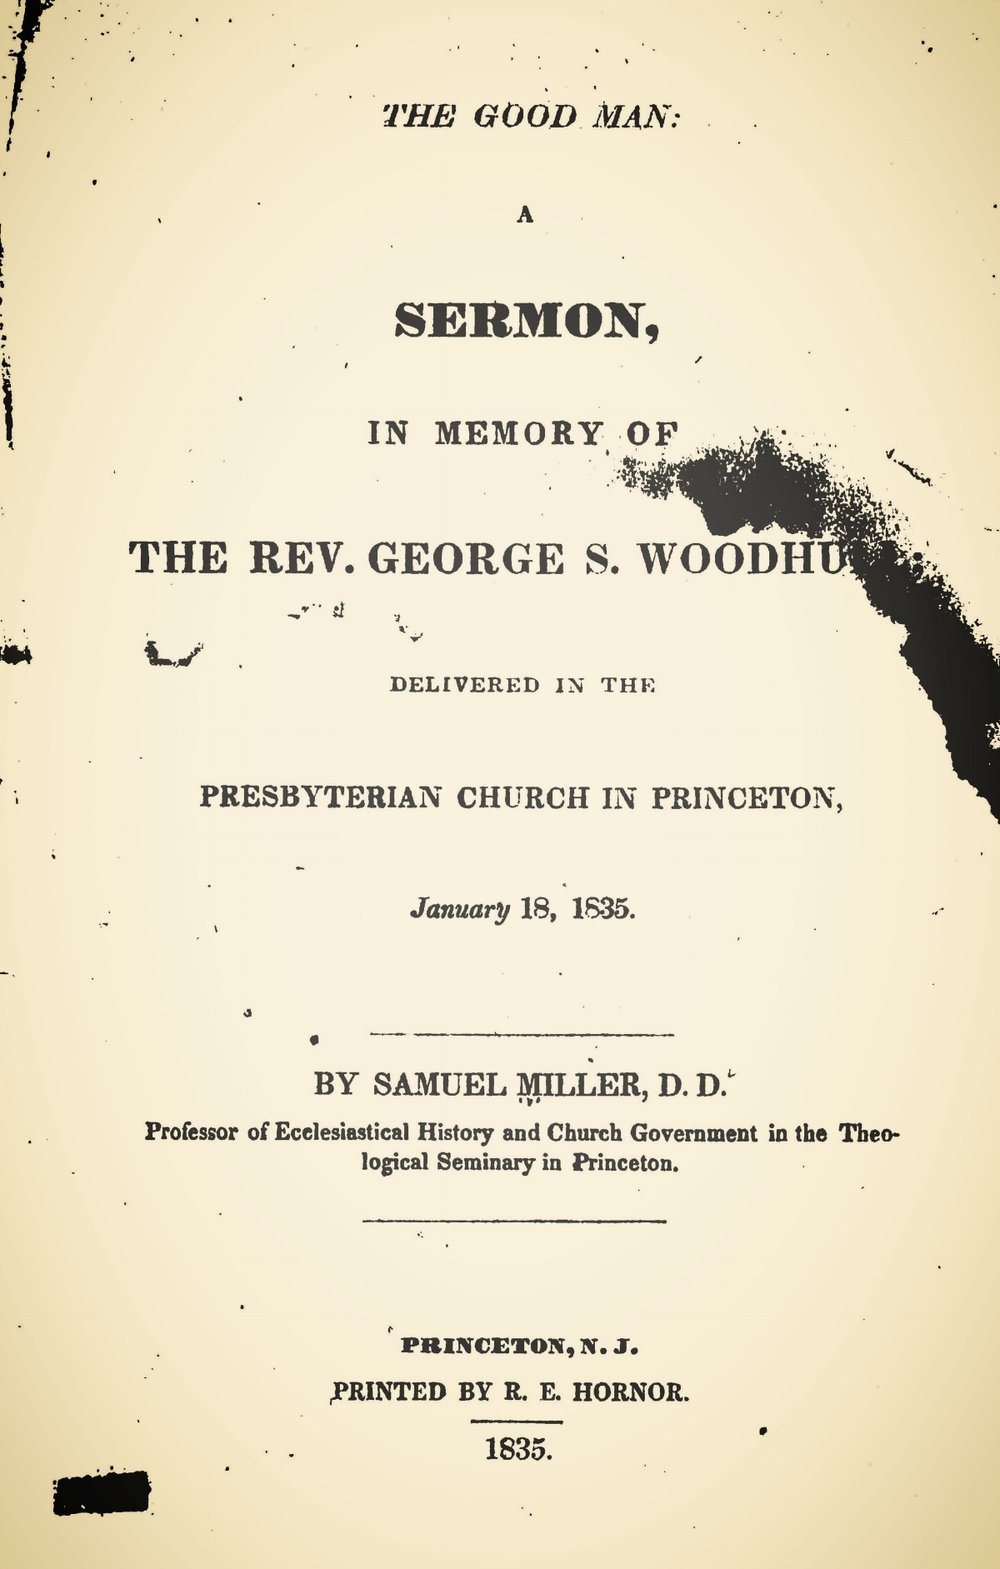 Miller, Samuel, The Good Man Title Page.jpg